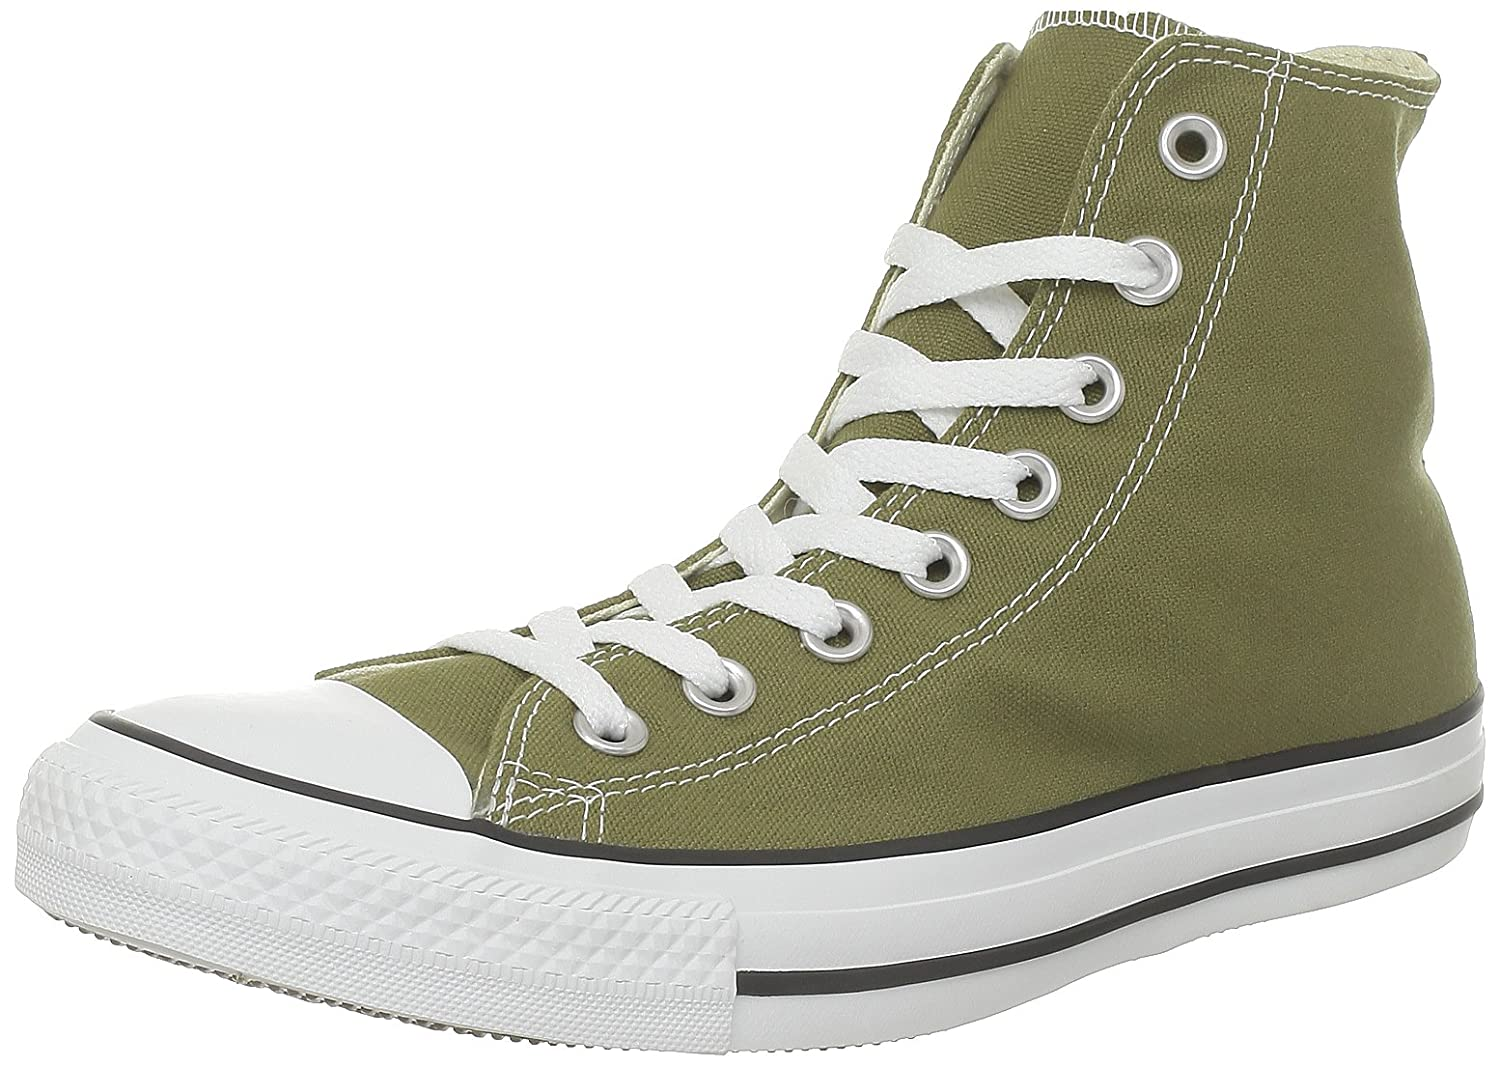 Converse Ctas (Olive) Core 19902 Hi, Vert Baskets mode mixte adulte Vert (Olive) 352debc - automaticcouplings.space